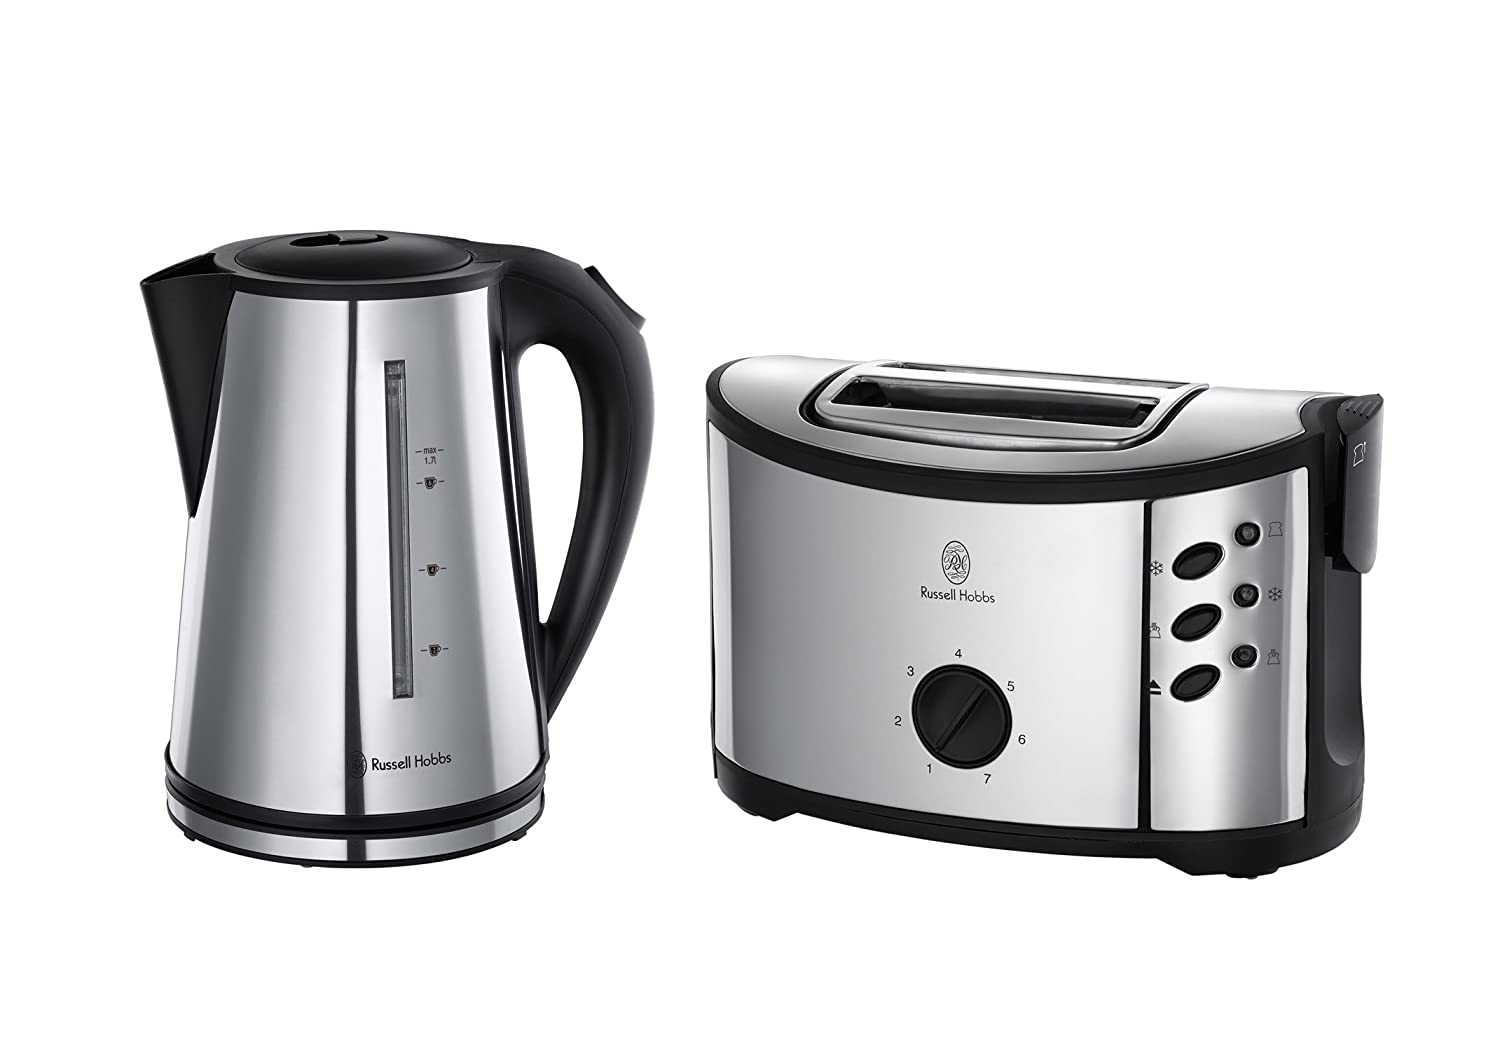 List Of Synonyms And Antonyms Of The Word Kittle And Toaster